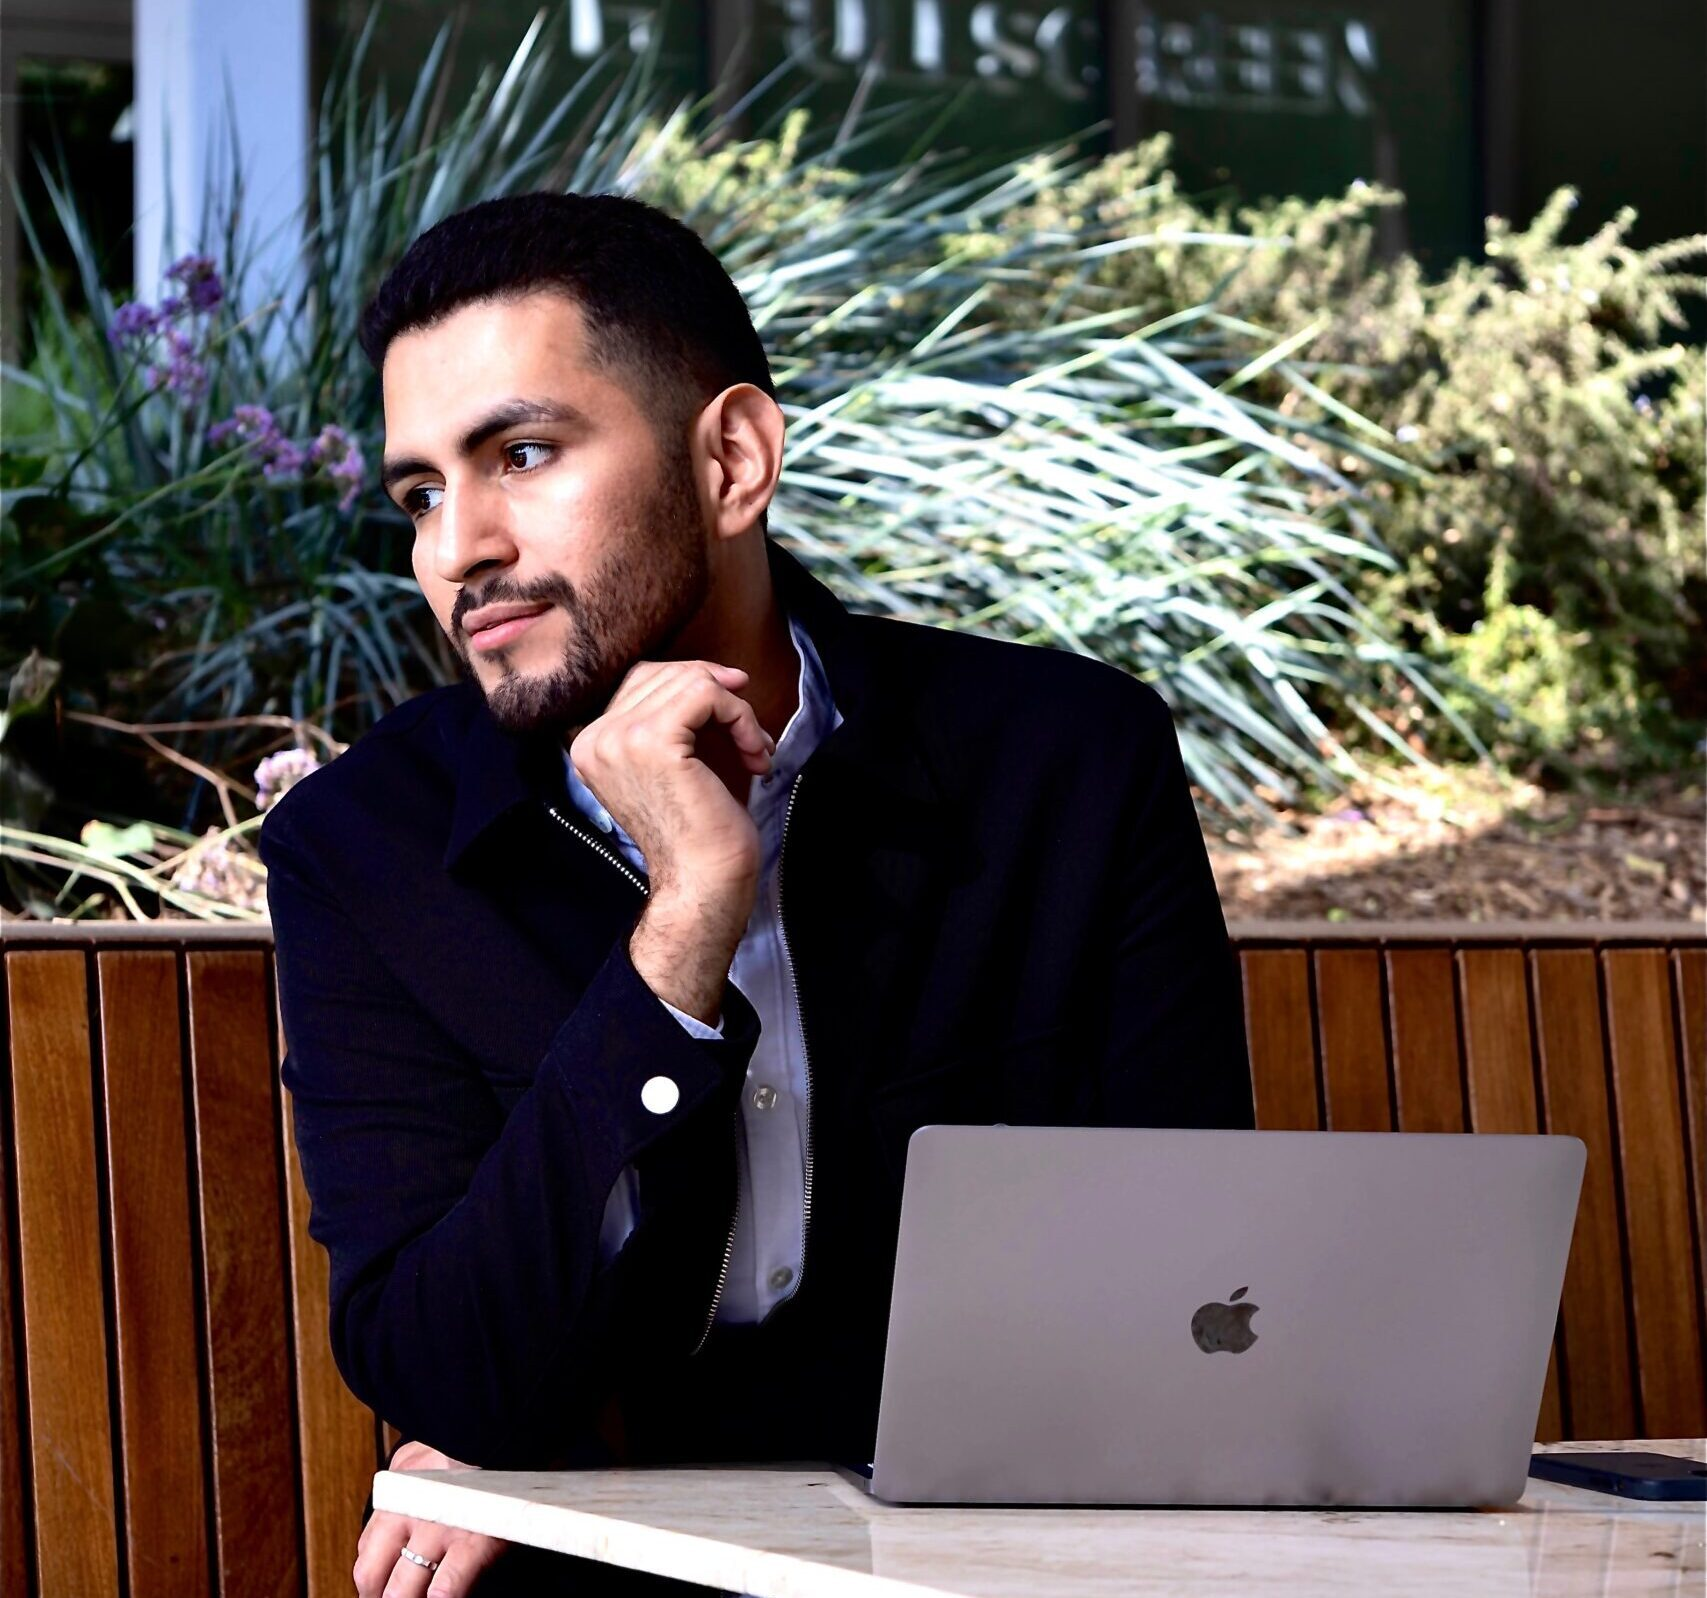 Los Angeles stylist Alec Lopez pictured sitting in from of his laptop working